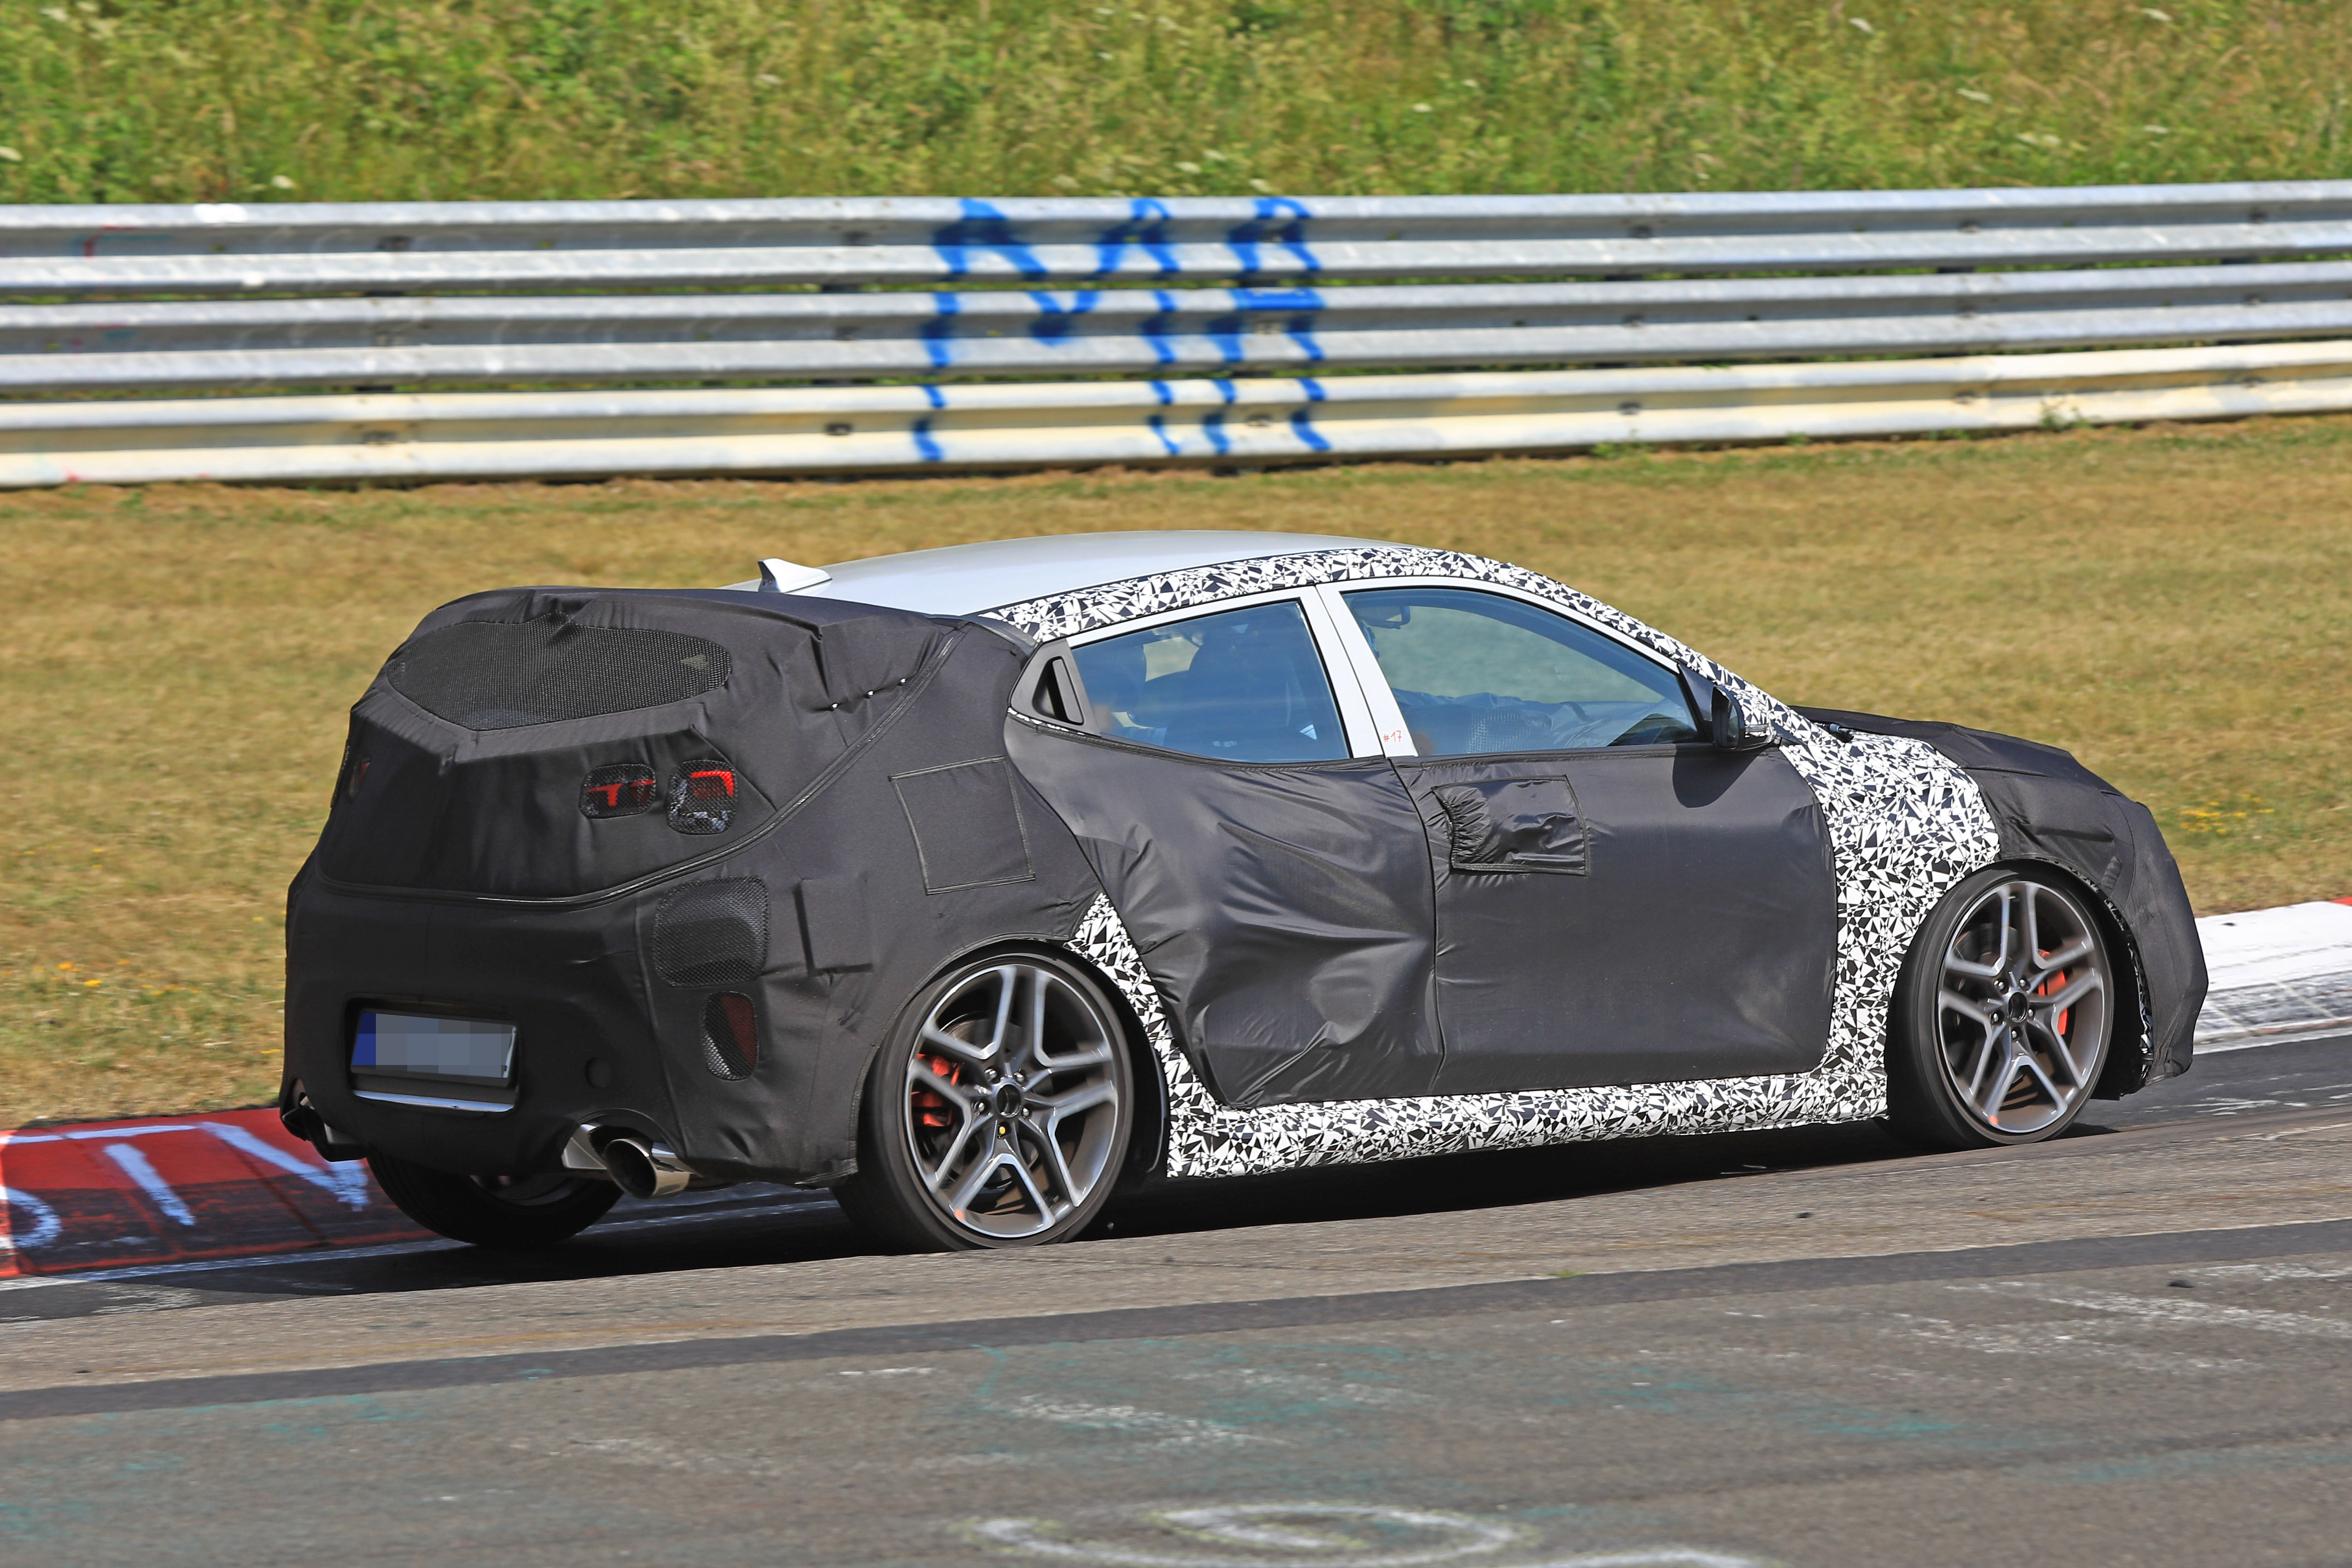 2019 Hyundai Veloster N Spied with Massive Exhaust Pipes